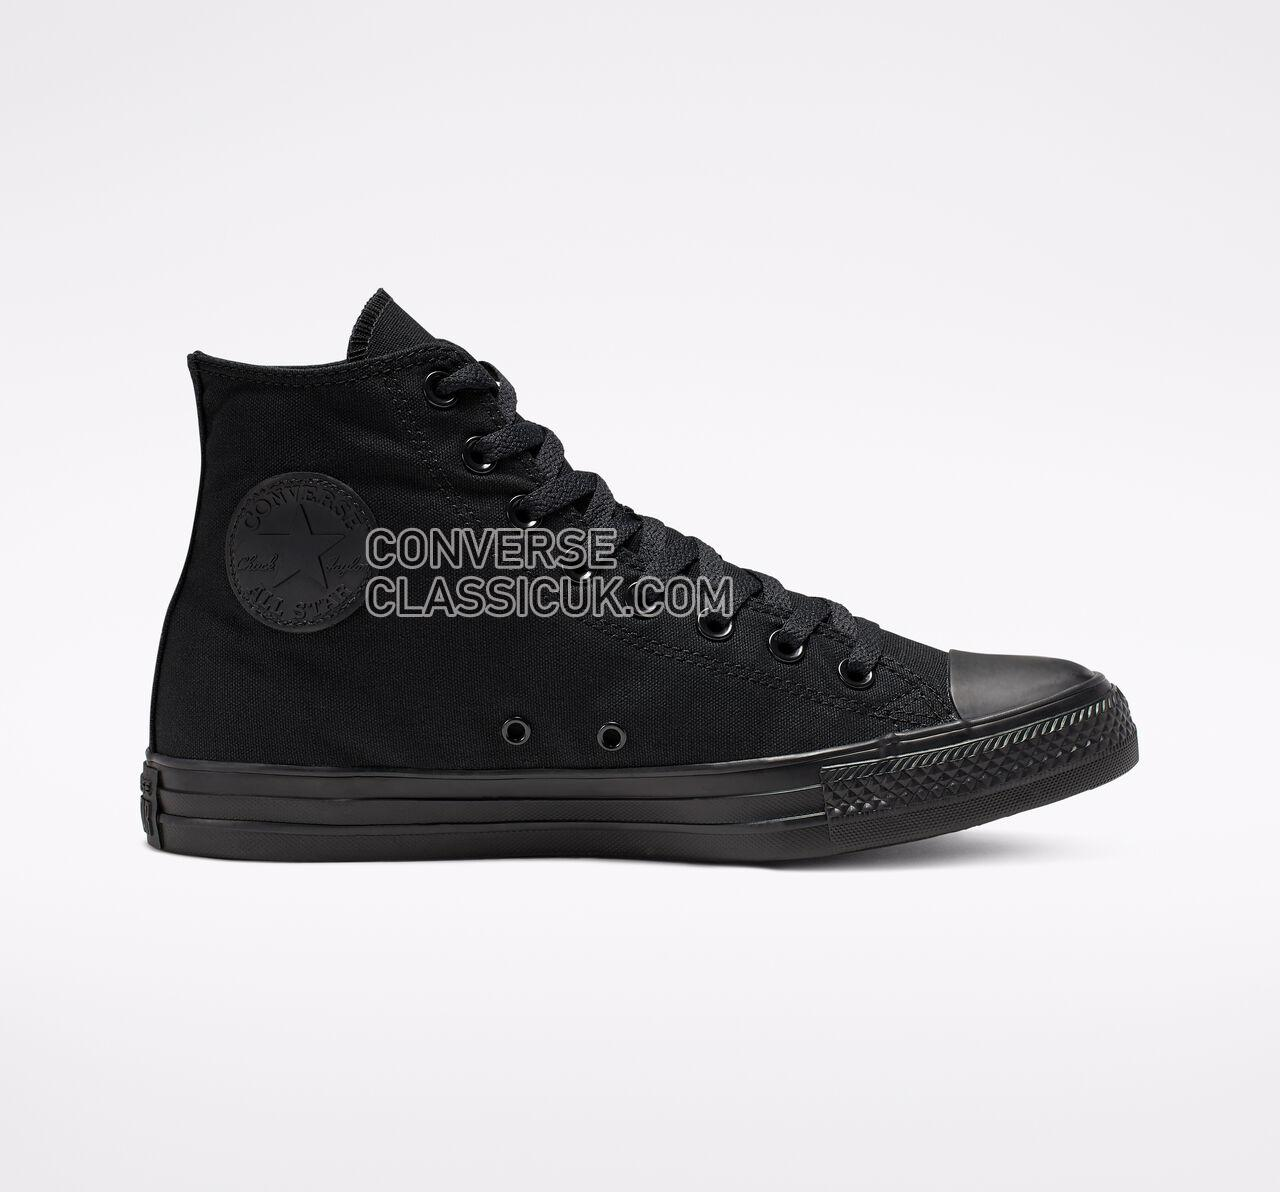 Converse Chuck Taylor All Star High Top Mens Womens Unisex M3310 Black Monochrome Shoes